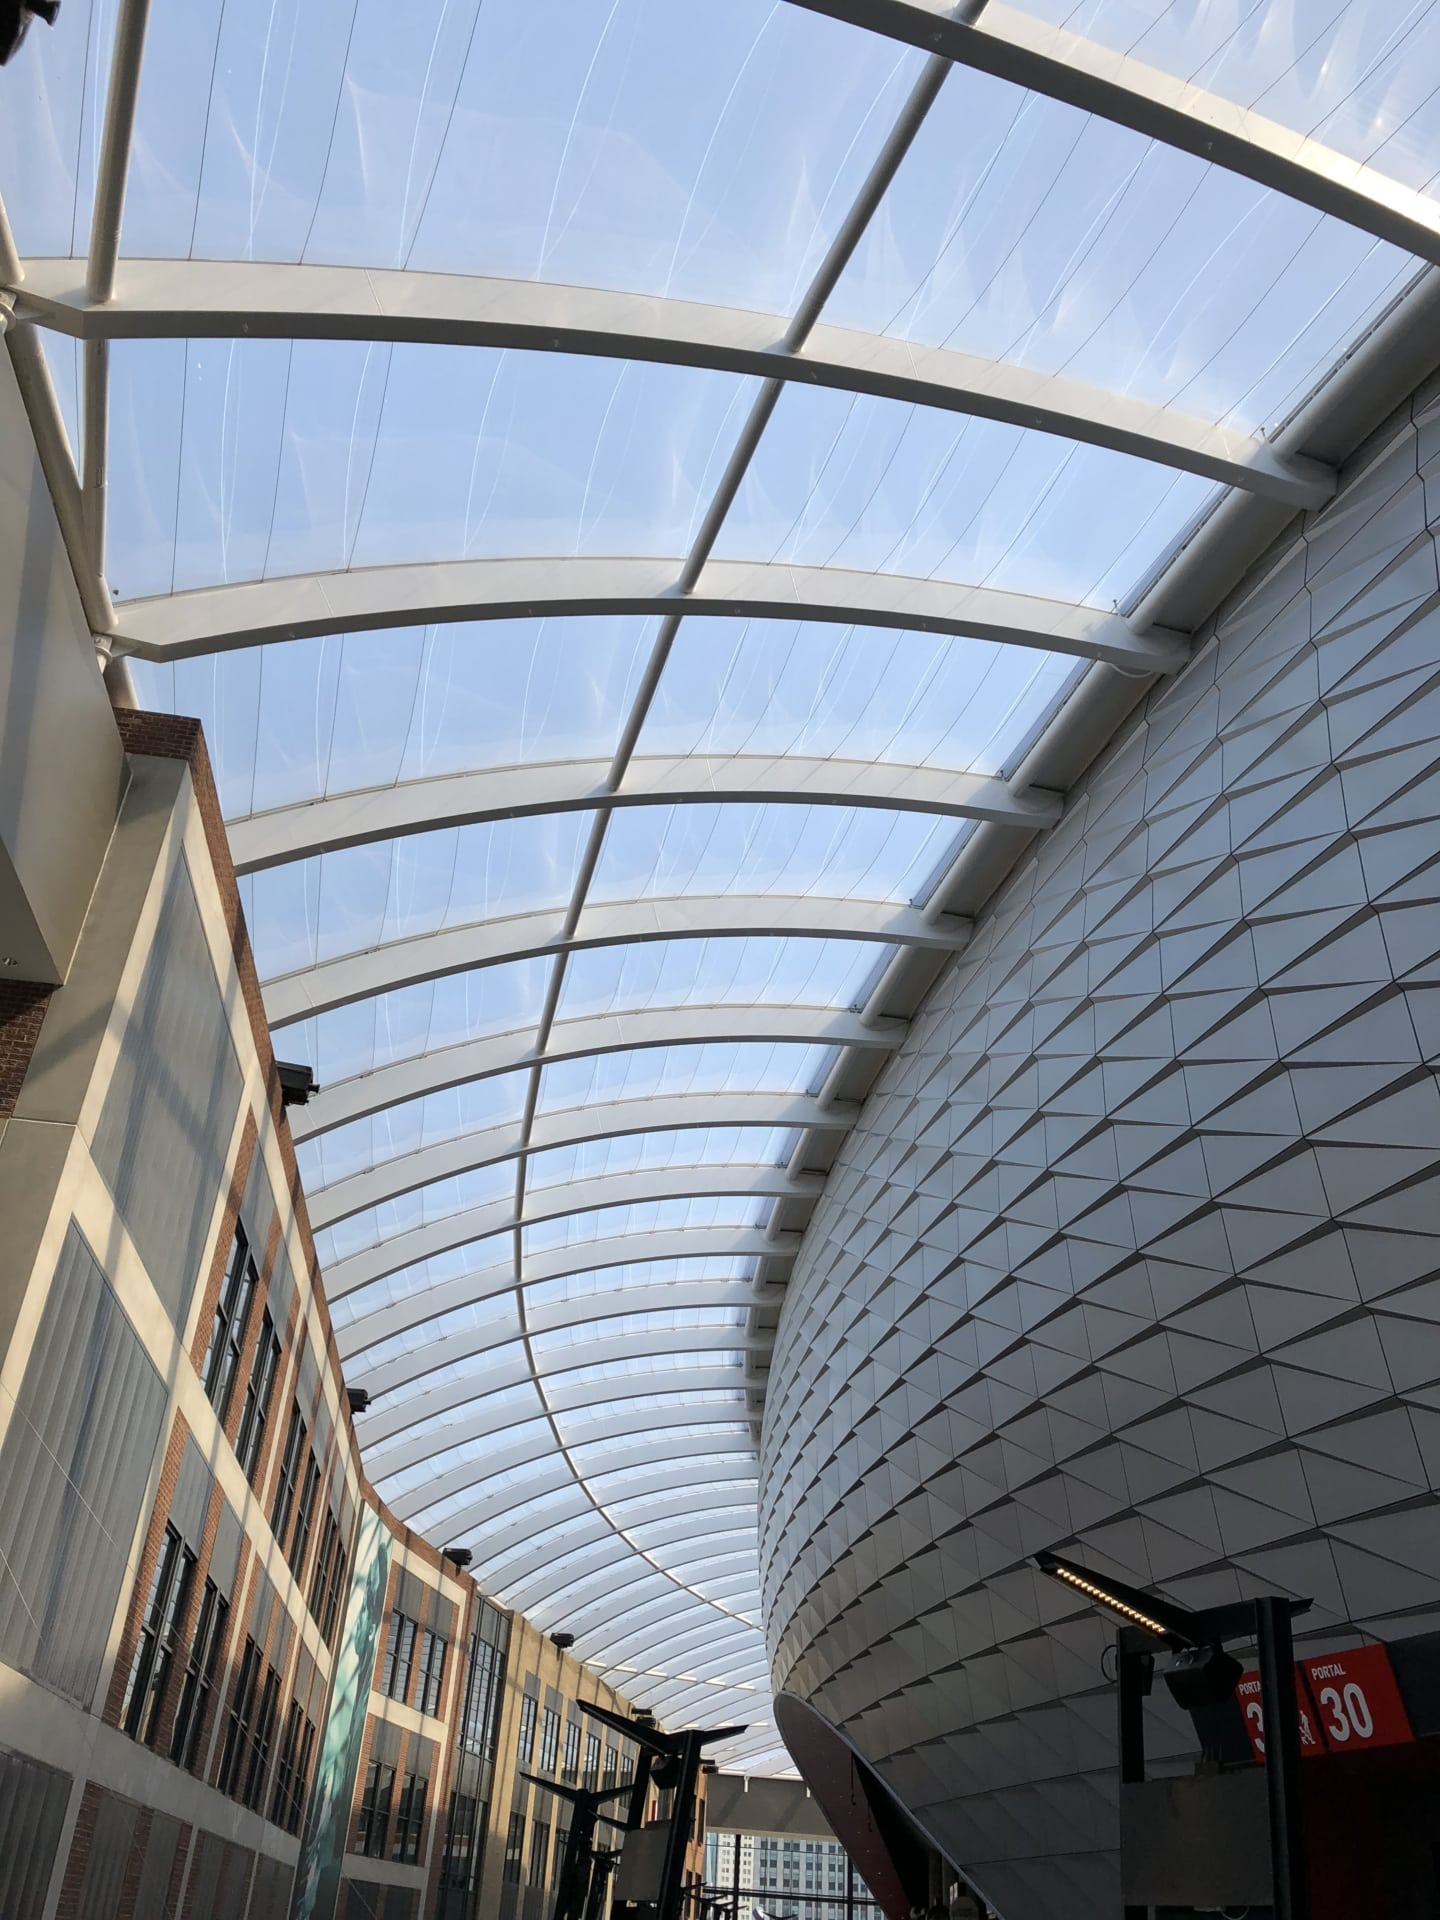 A view of the sky through the ETFE roof